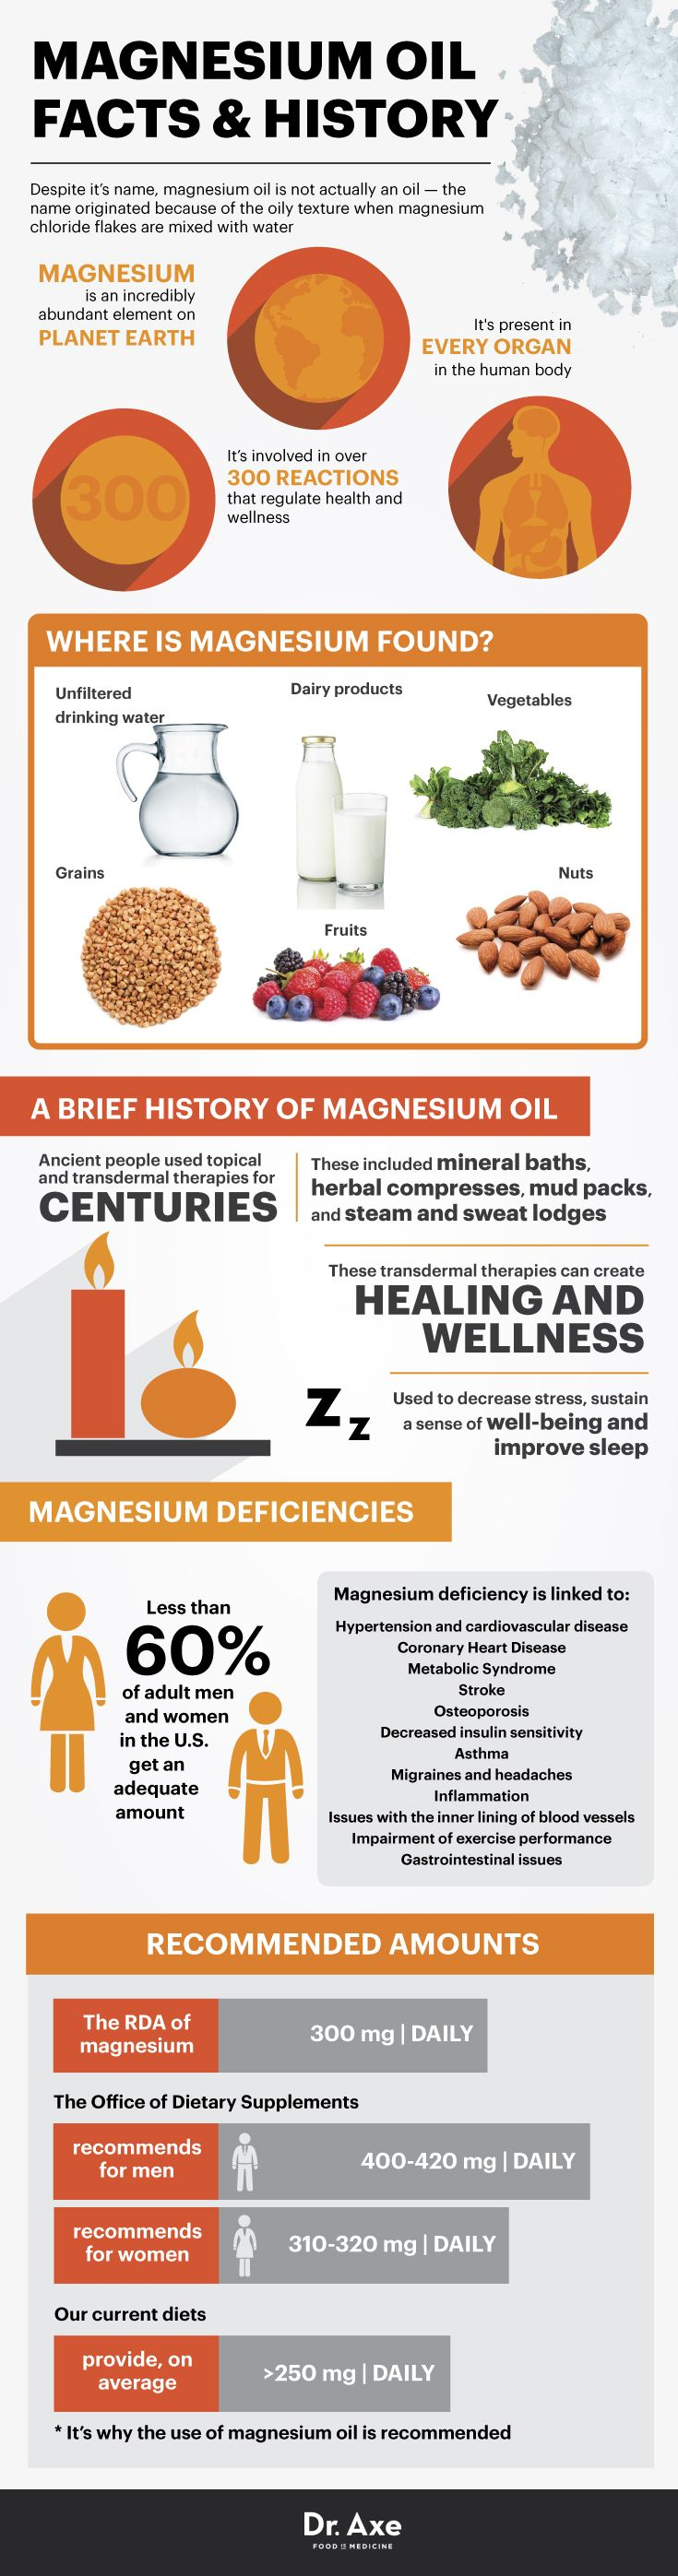 Magnesium oil facts - Dr. Axe http://www.draxe.com #health #holistic #natural #detox